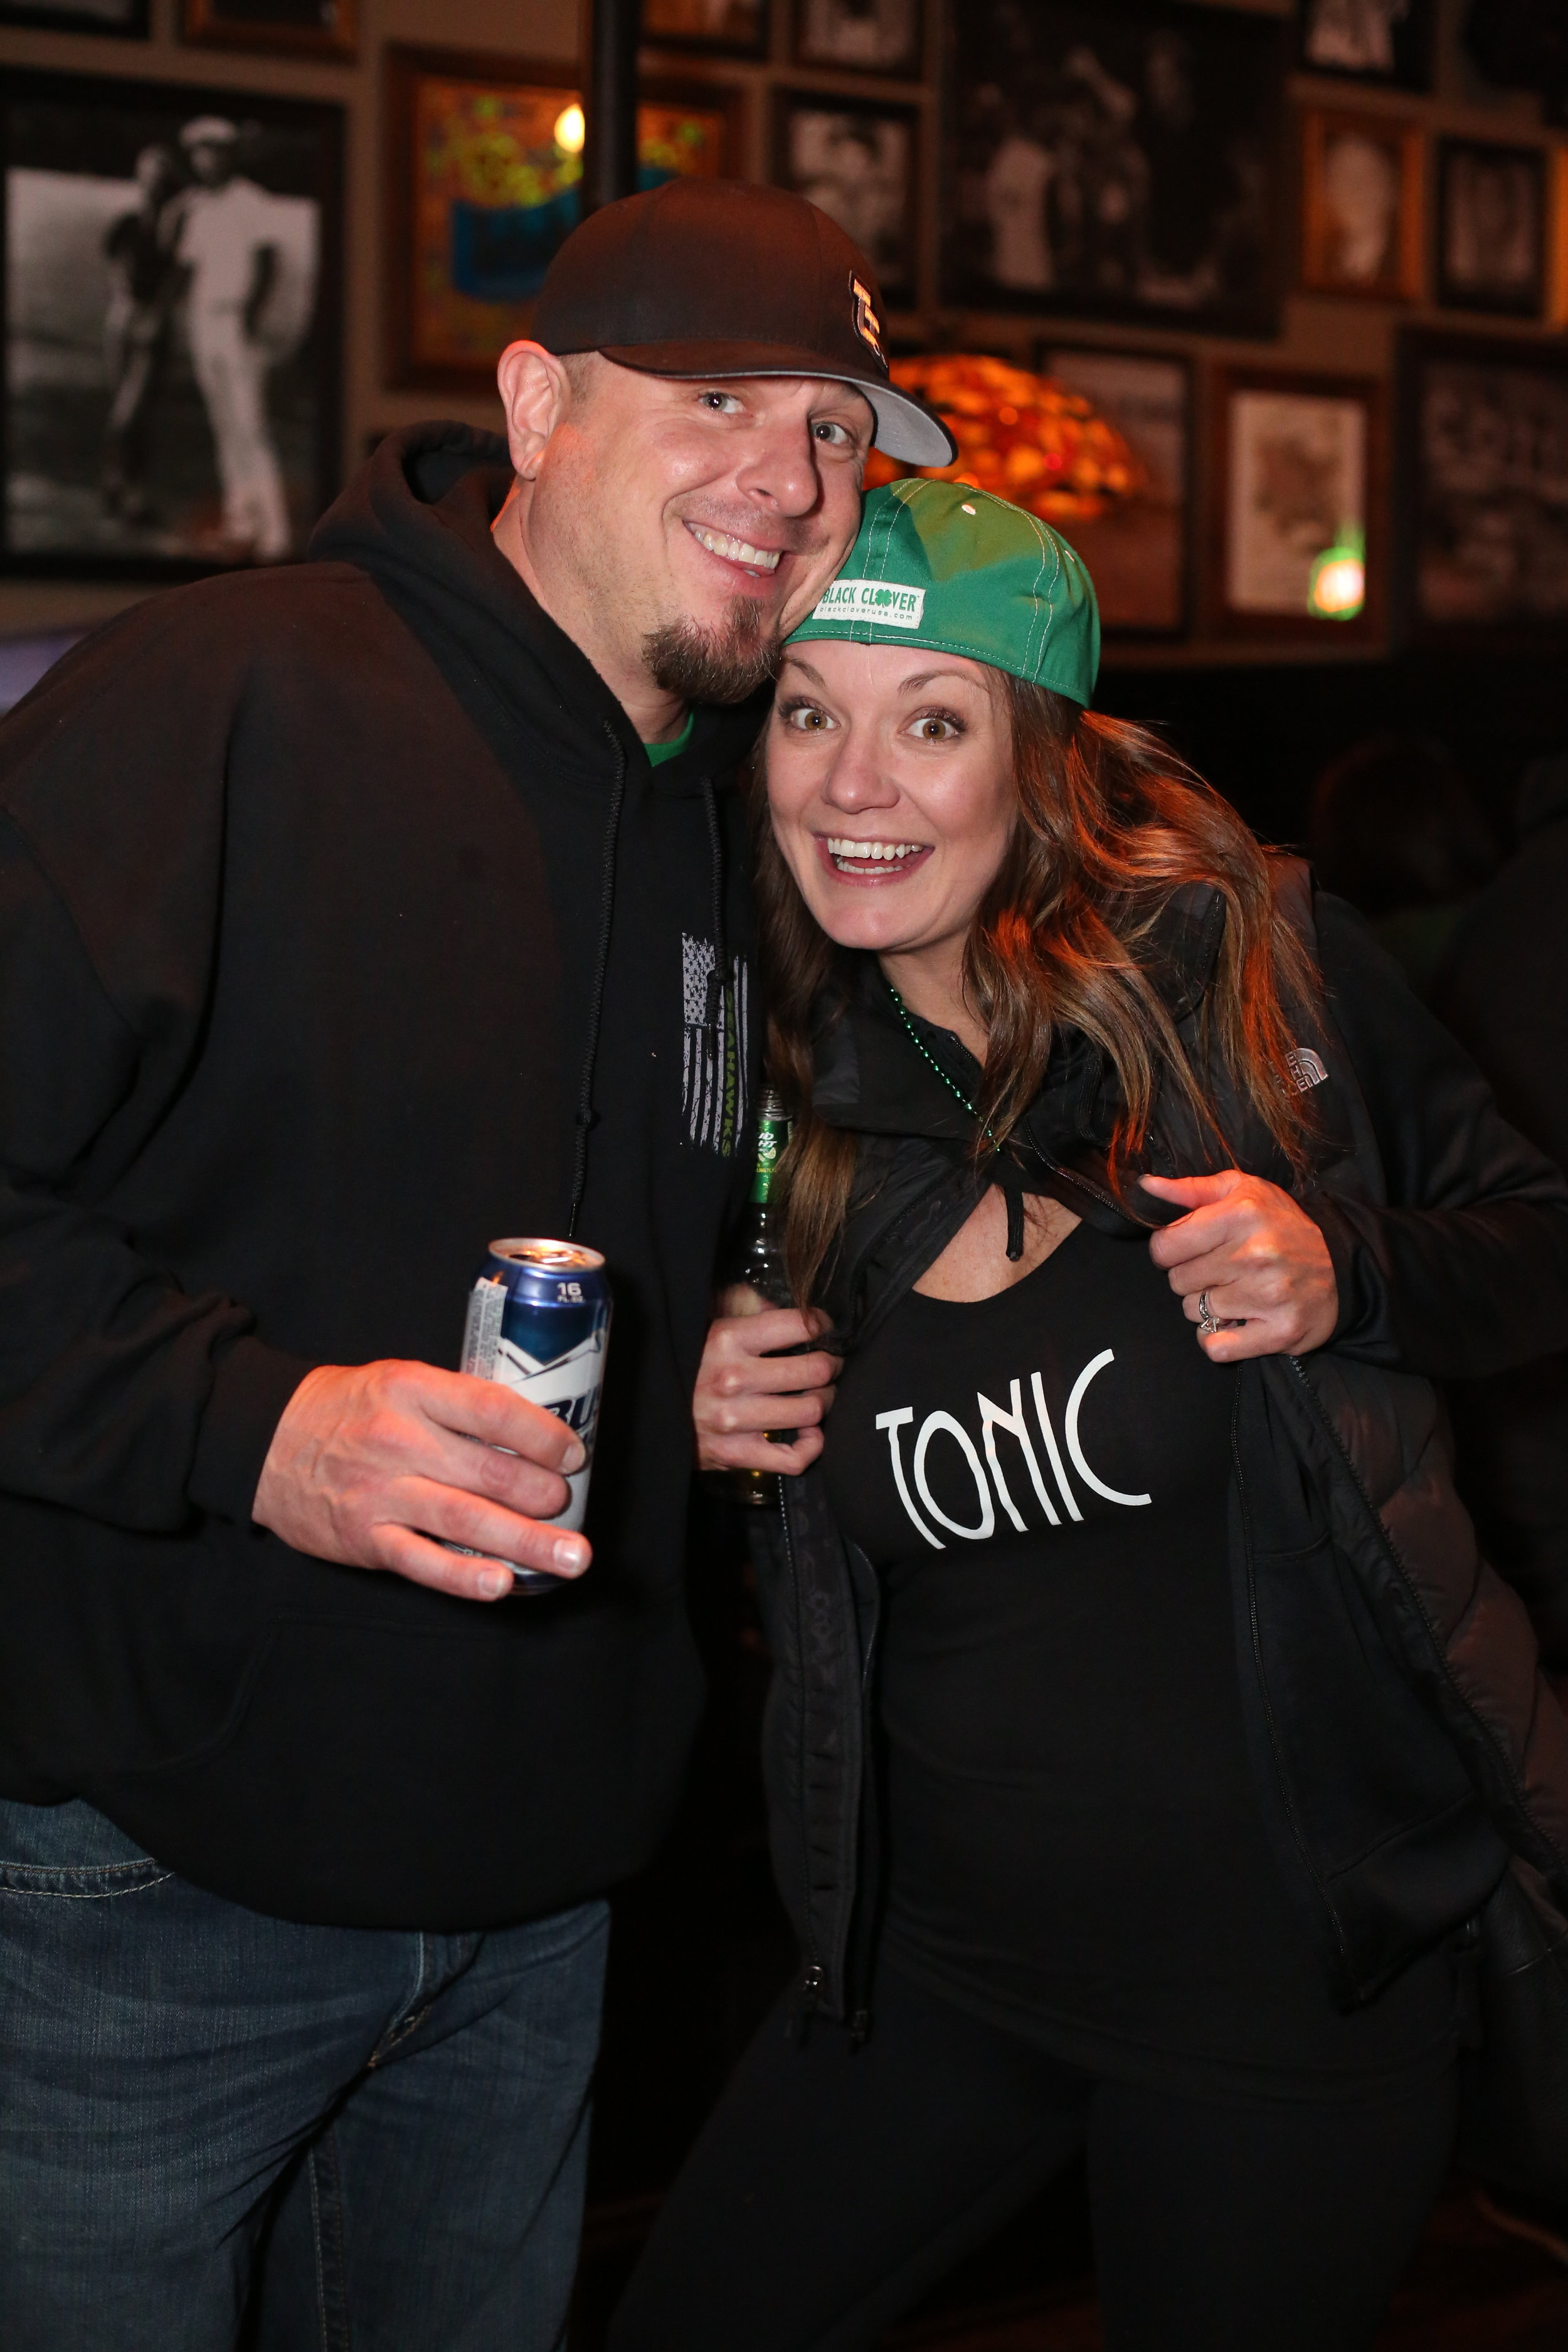 The Irish, West Des Moines St Paddy's Day Celebration